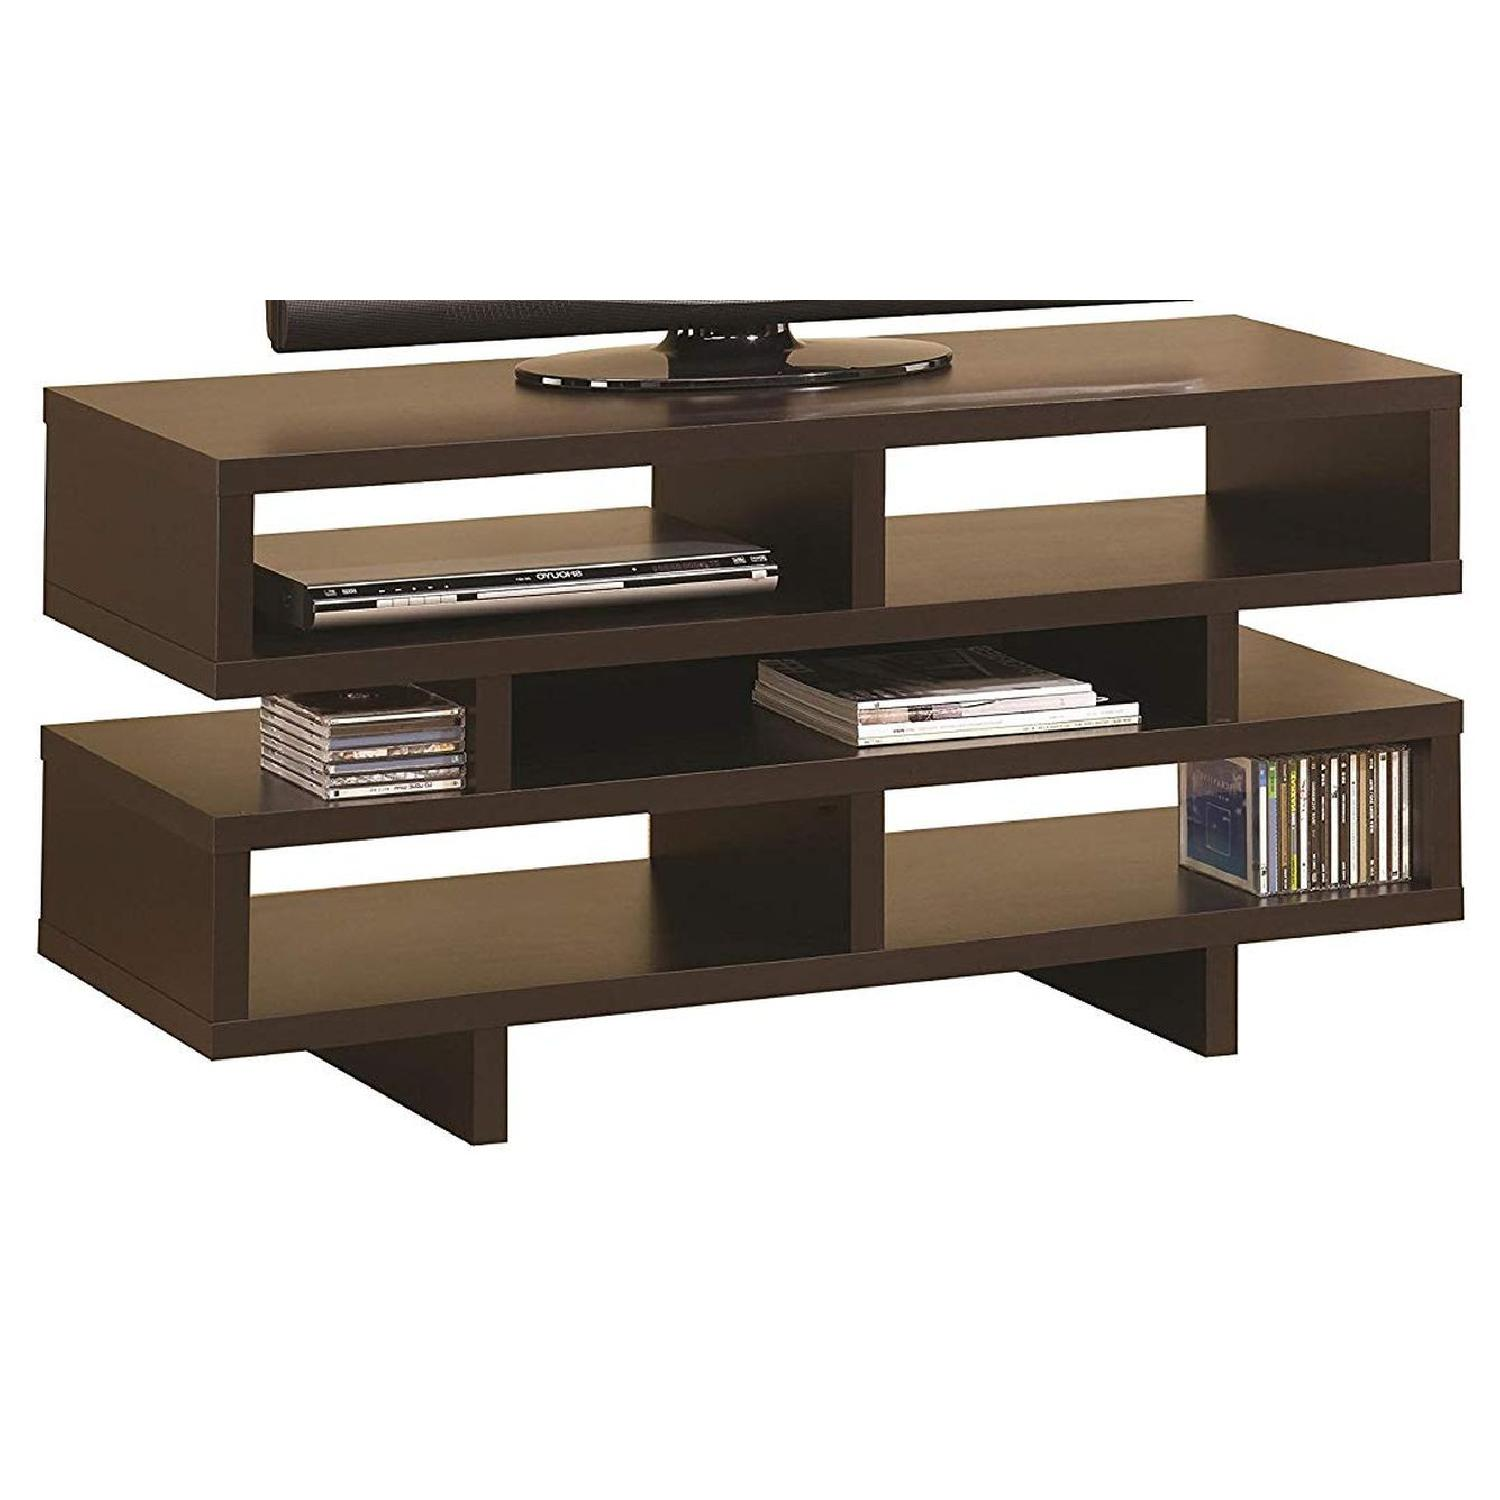 TV Stand In Rustic Oak Finish w/ 2 Cabinets & 2 Drawers - image-10